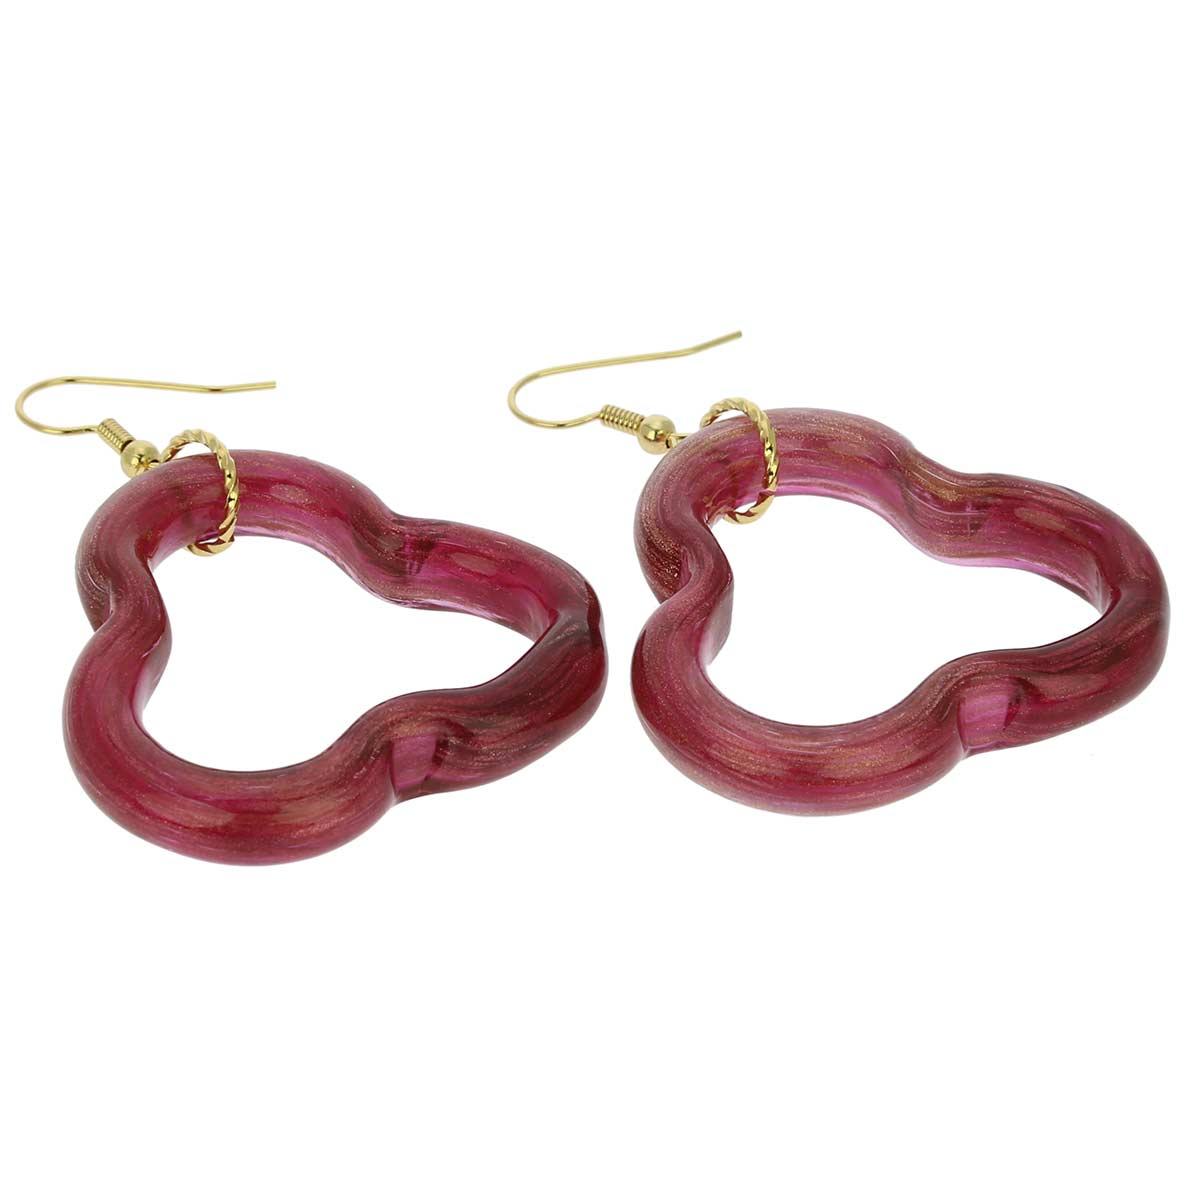 Nicoletta Murano Earrings - Cranberry